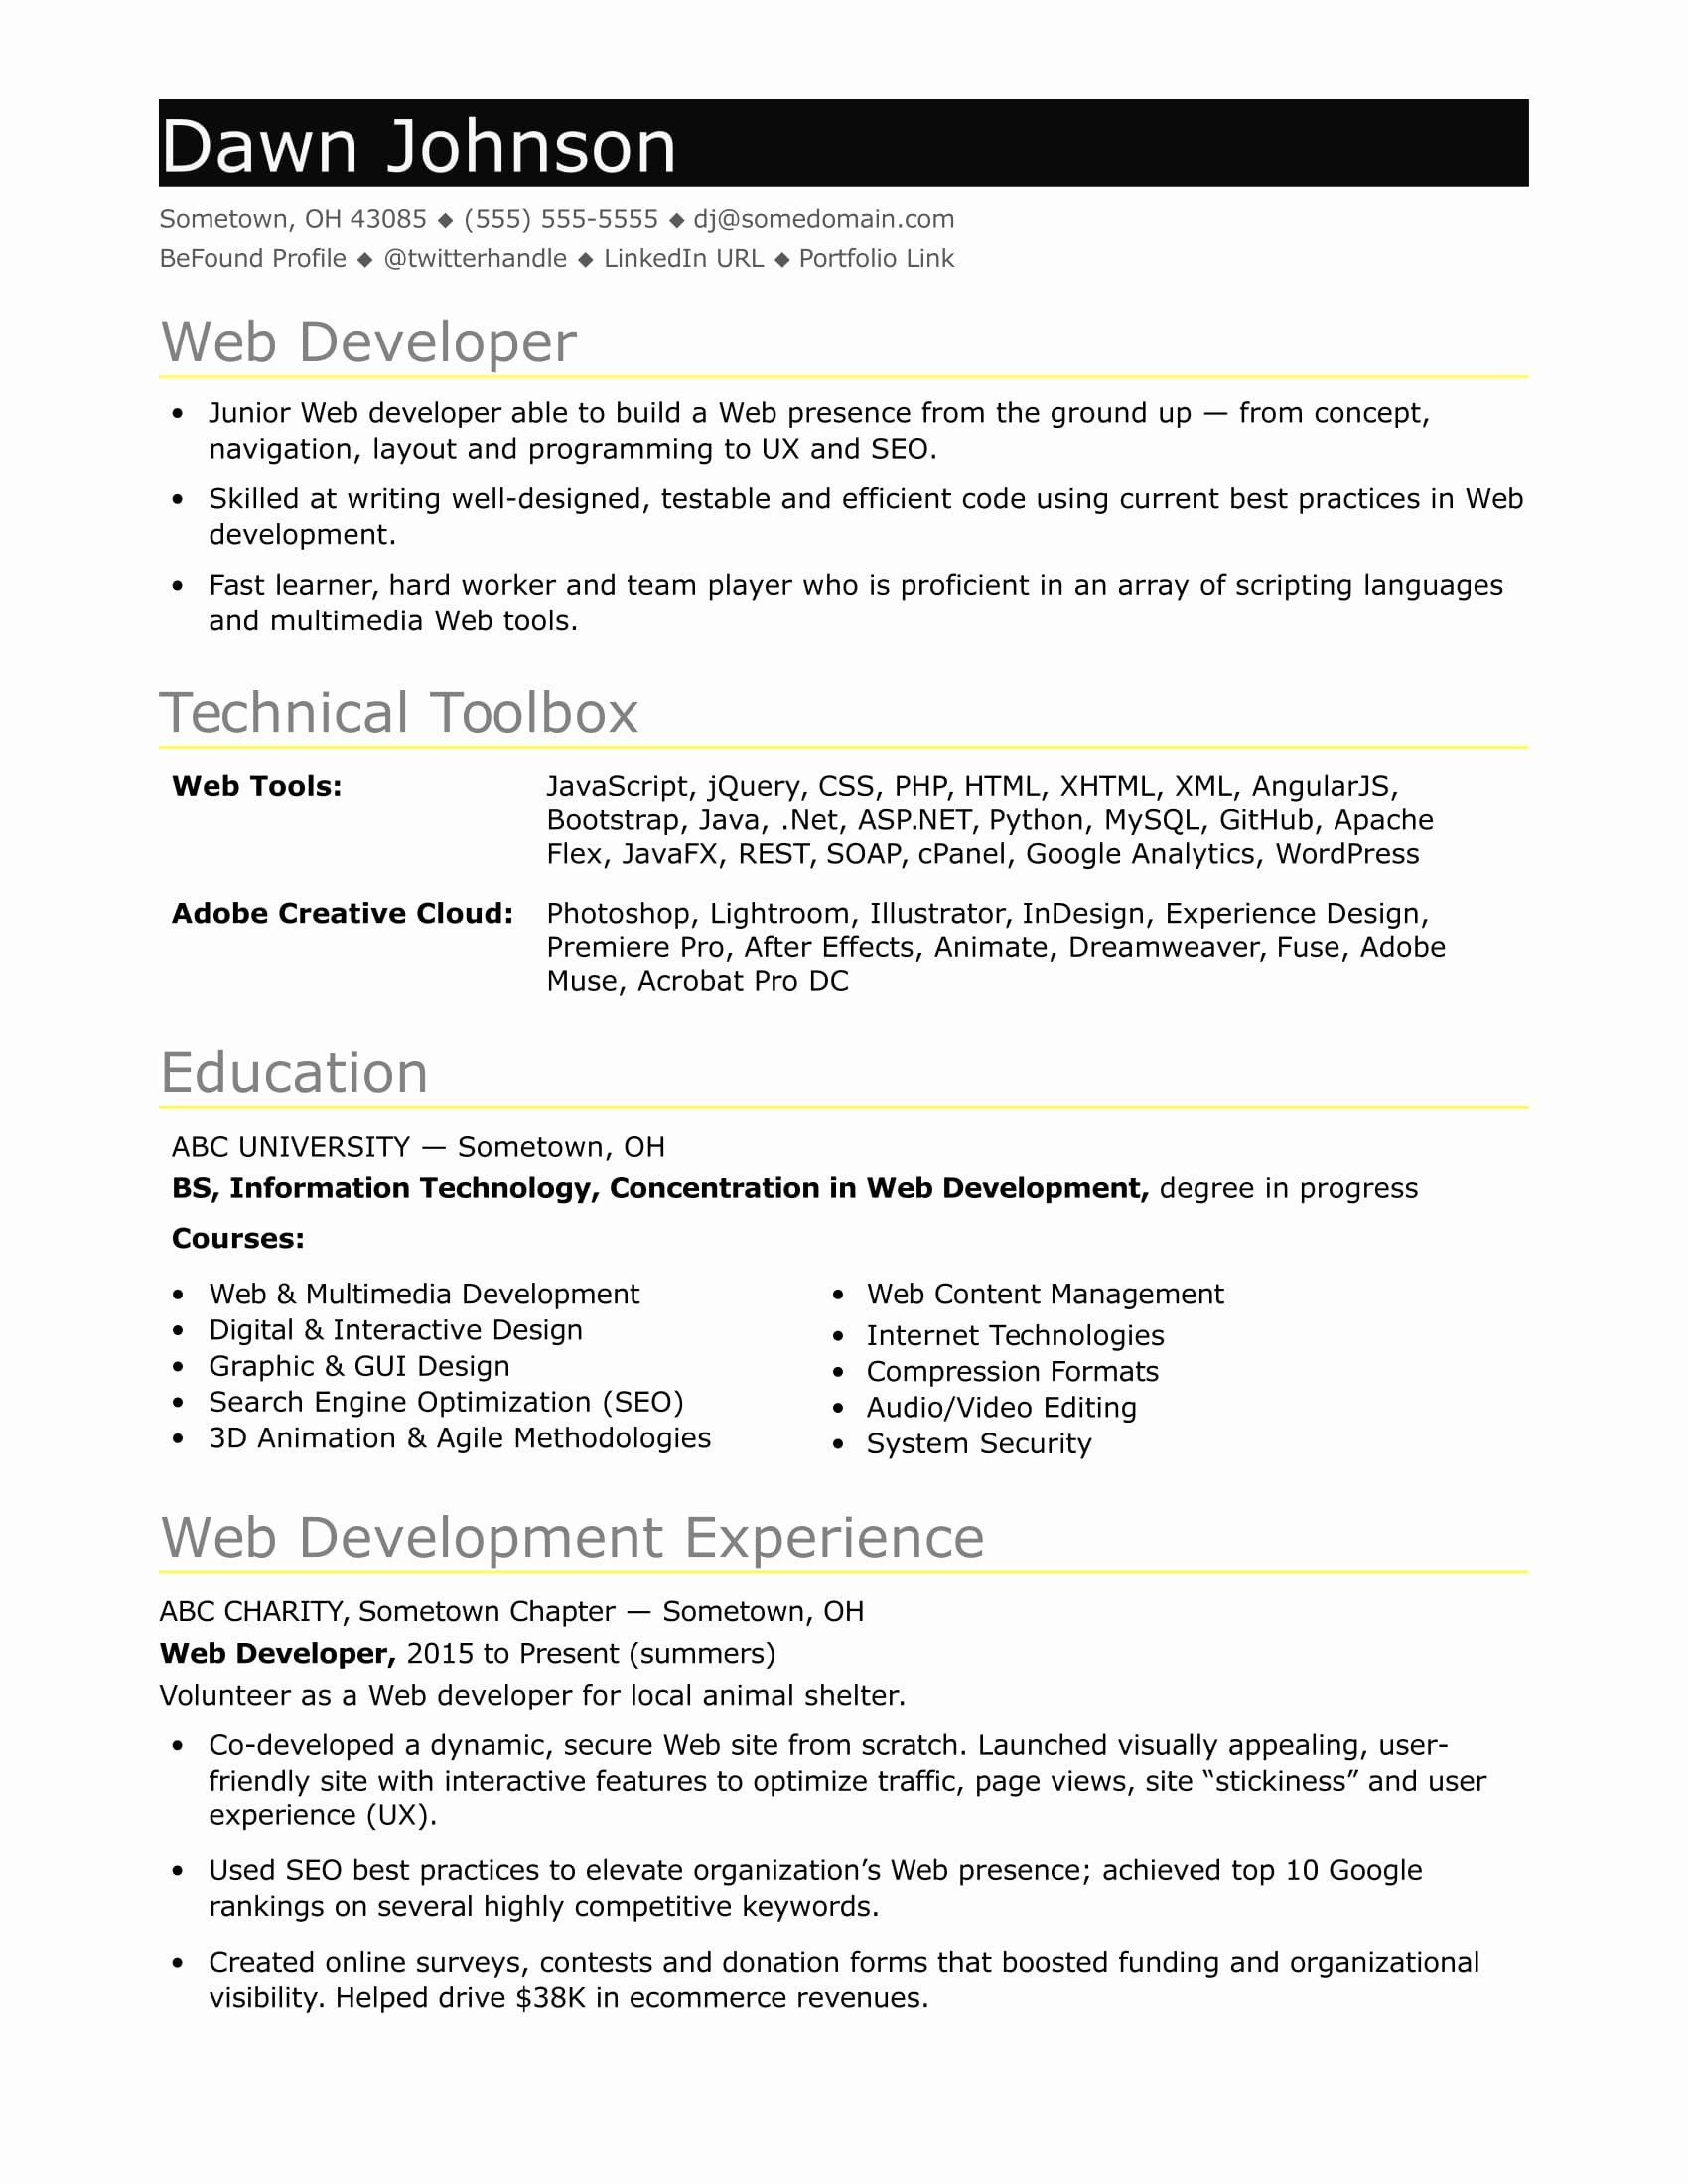 Entry Level Information Technology Resume With No Experience Best Of Sample Resume For An Entry Level In 2020 Web Developer Resume Resume Template Resume Template Free